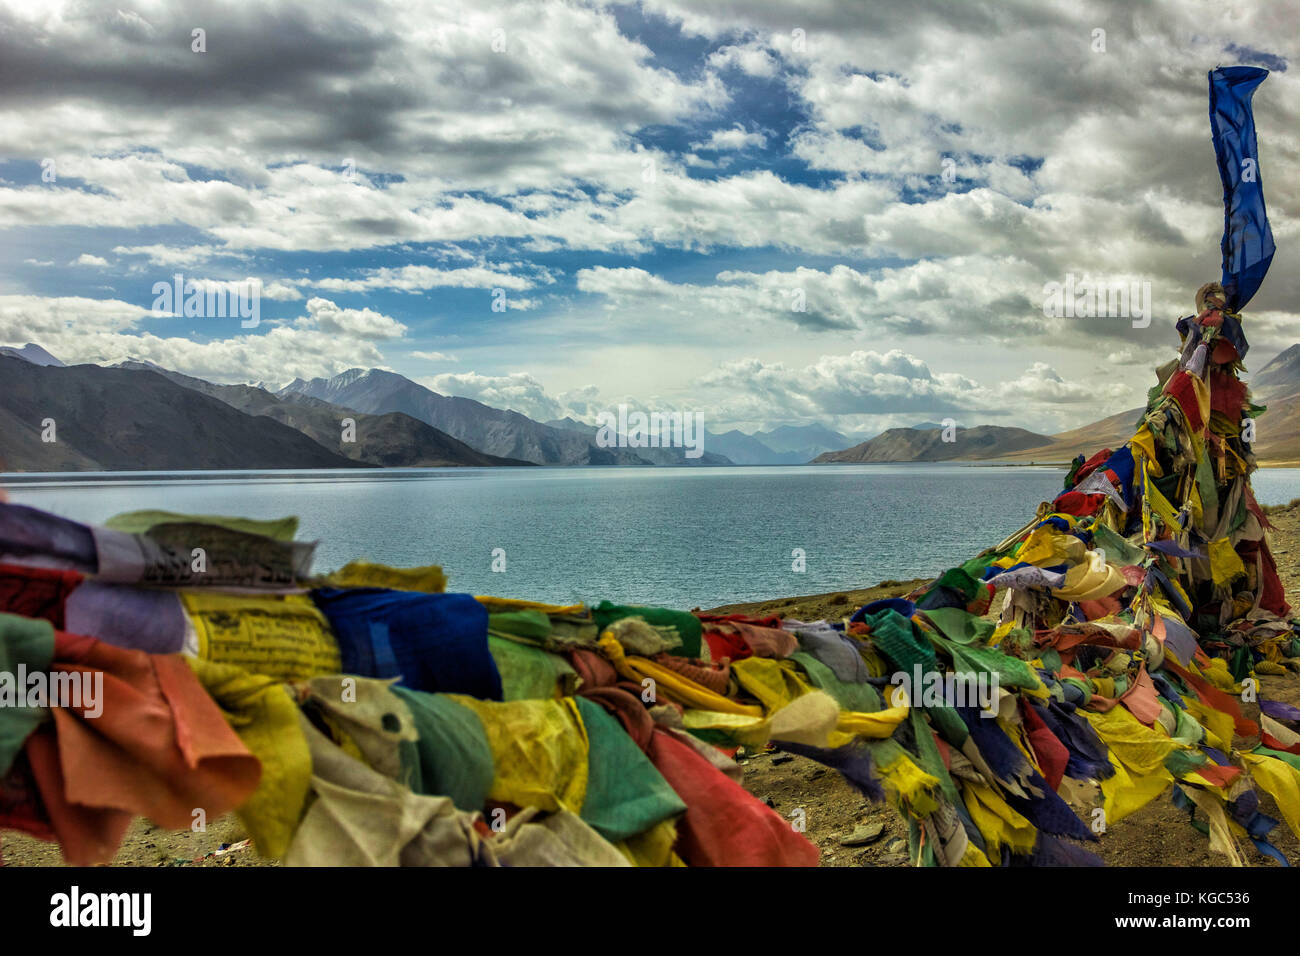 Pangong Tso, also referred to as Pangong Lake, is an endorheic lake in the Himalayas situated at a height of about Stock Photo